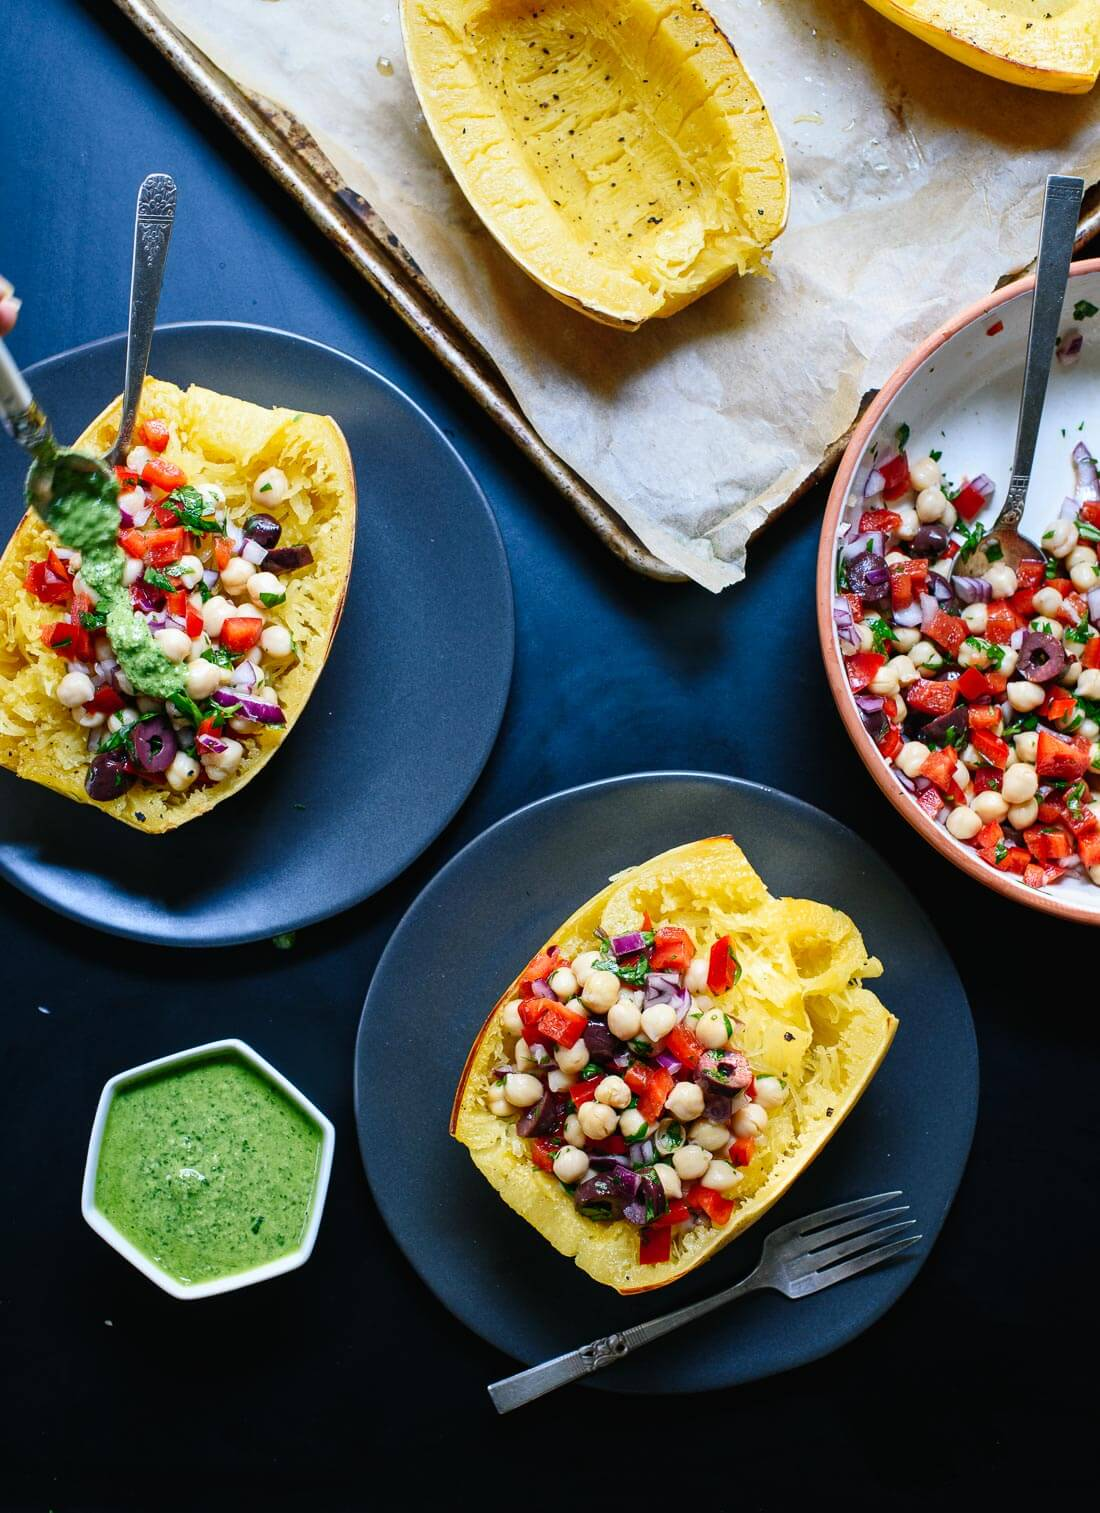 Mediterranean spaghetti squash bowls topped with pesto! So fresh and delicious. cookieandkate.com